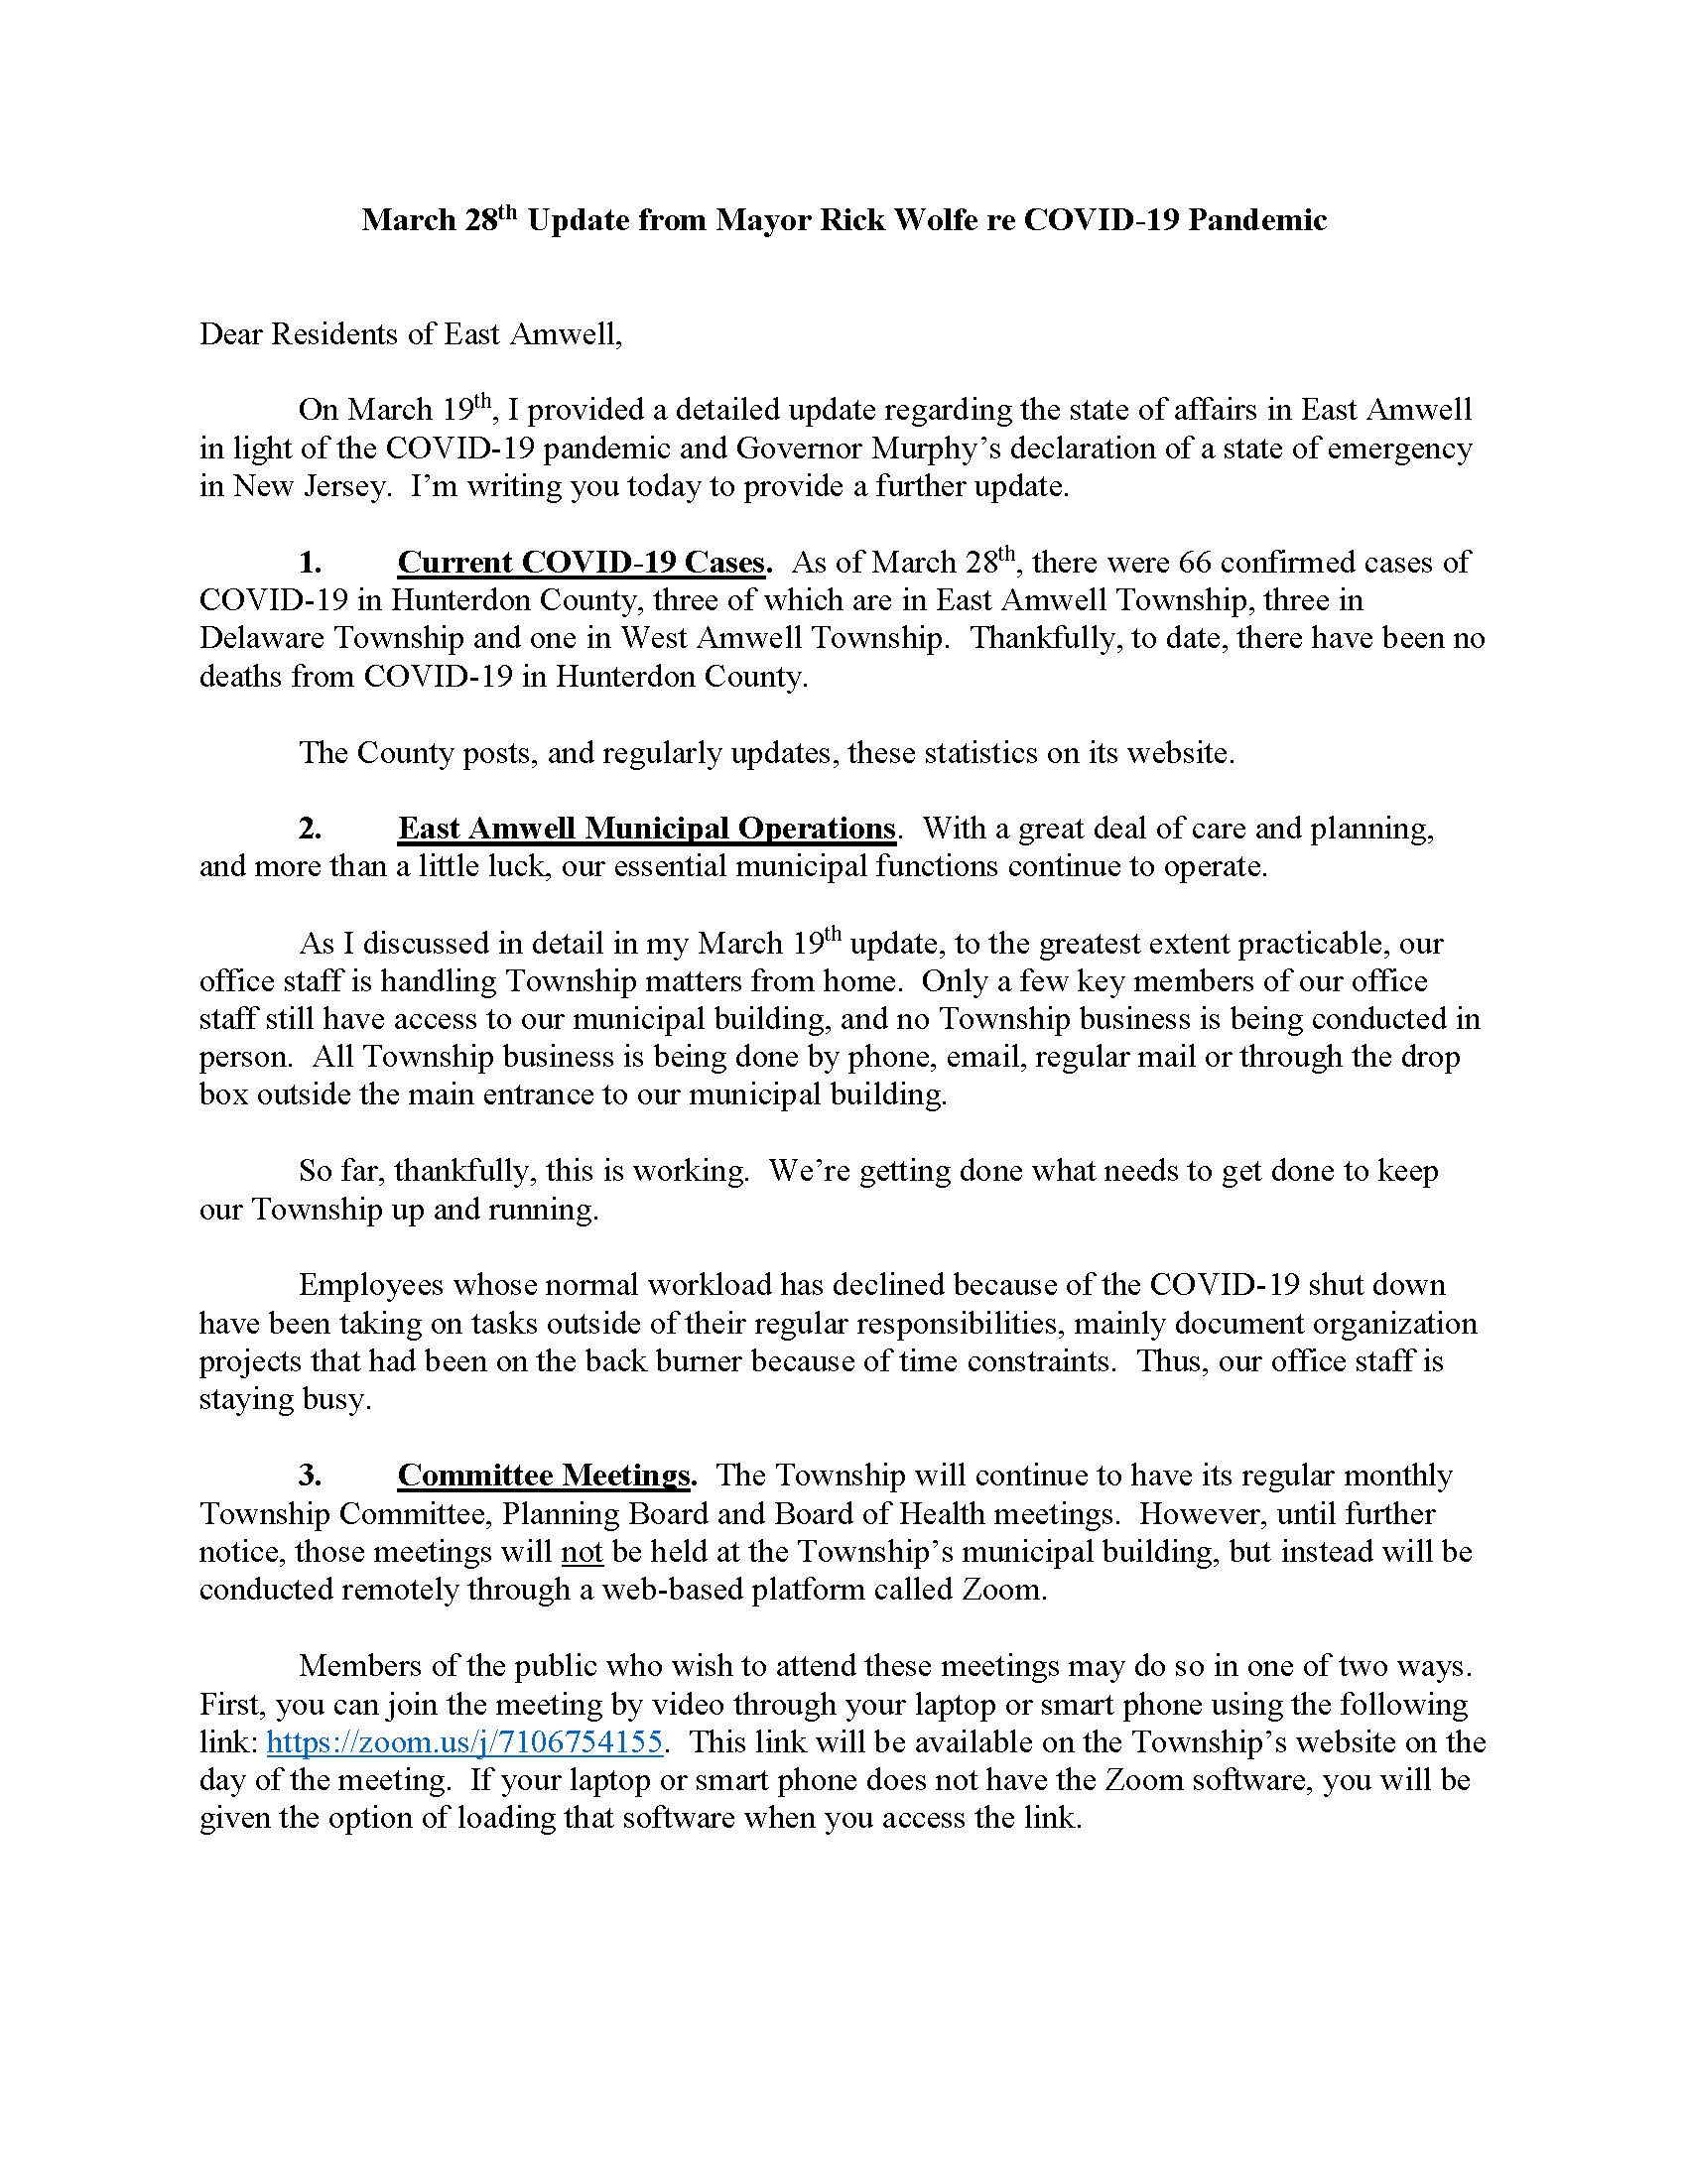 RAW (East Amwell)_  3_28_2020 Update to Residents re COVID-19 Matters (1)_Page_1